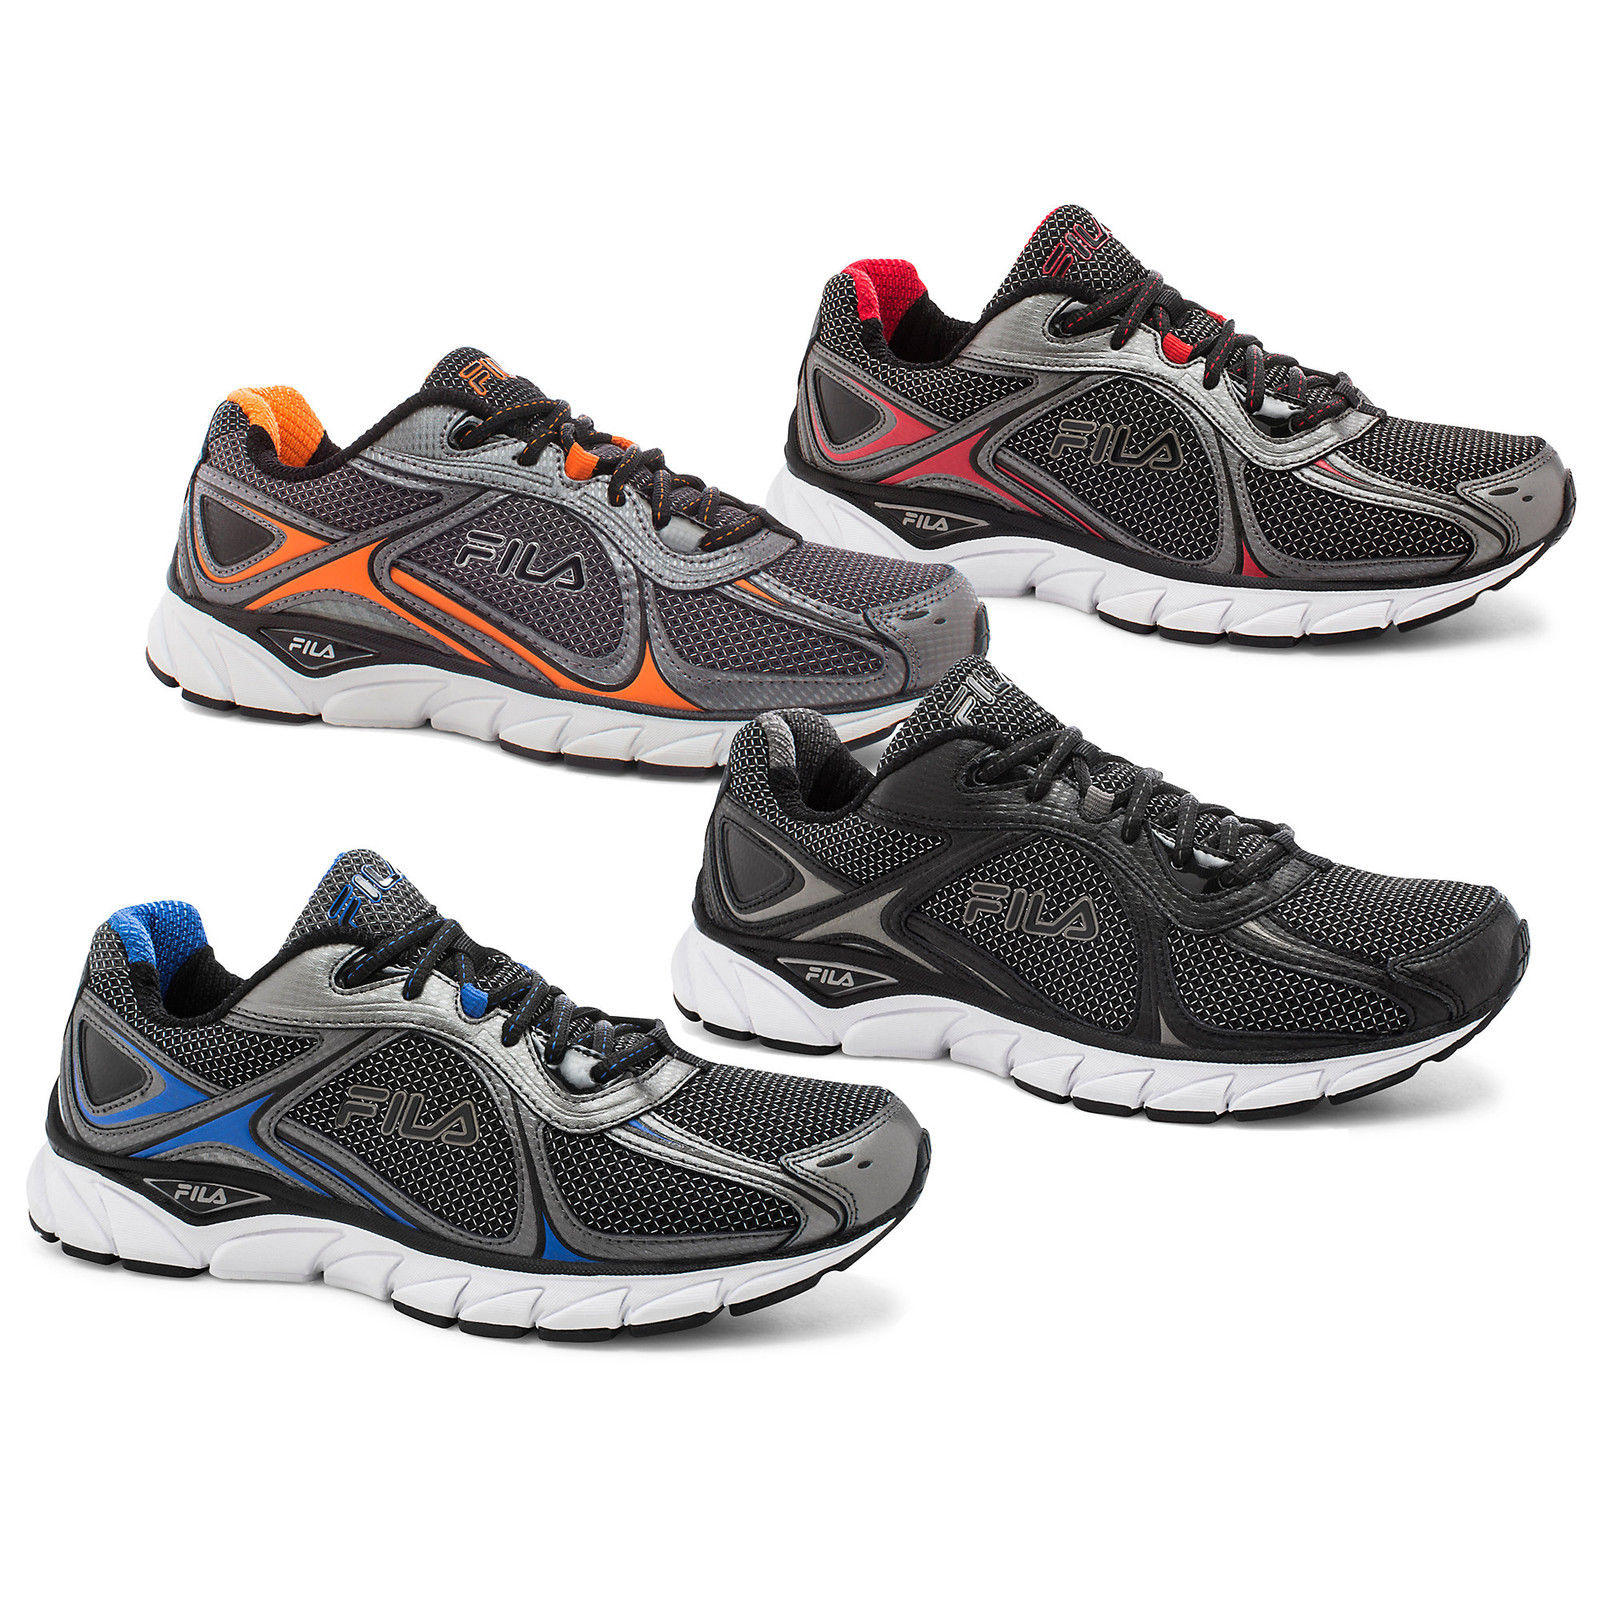 FILA Men's Quadrix Running shoes